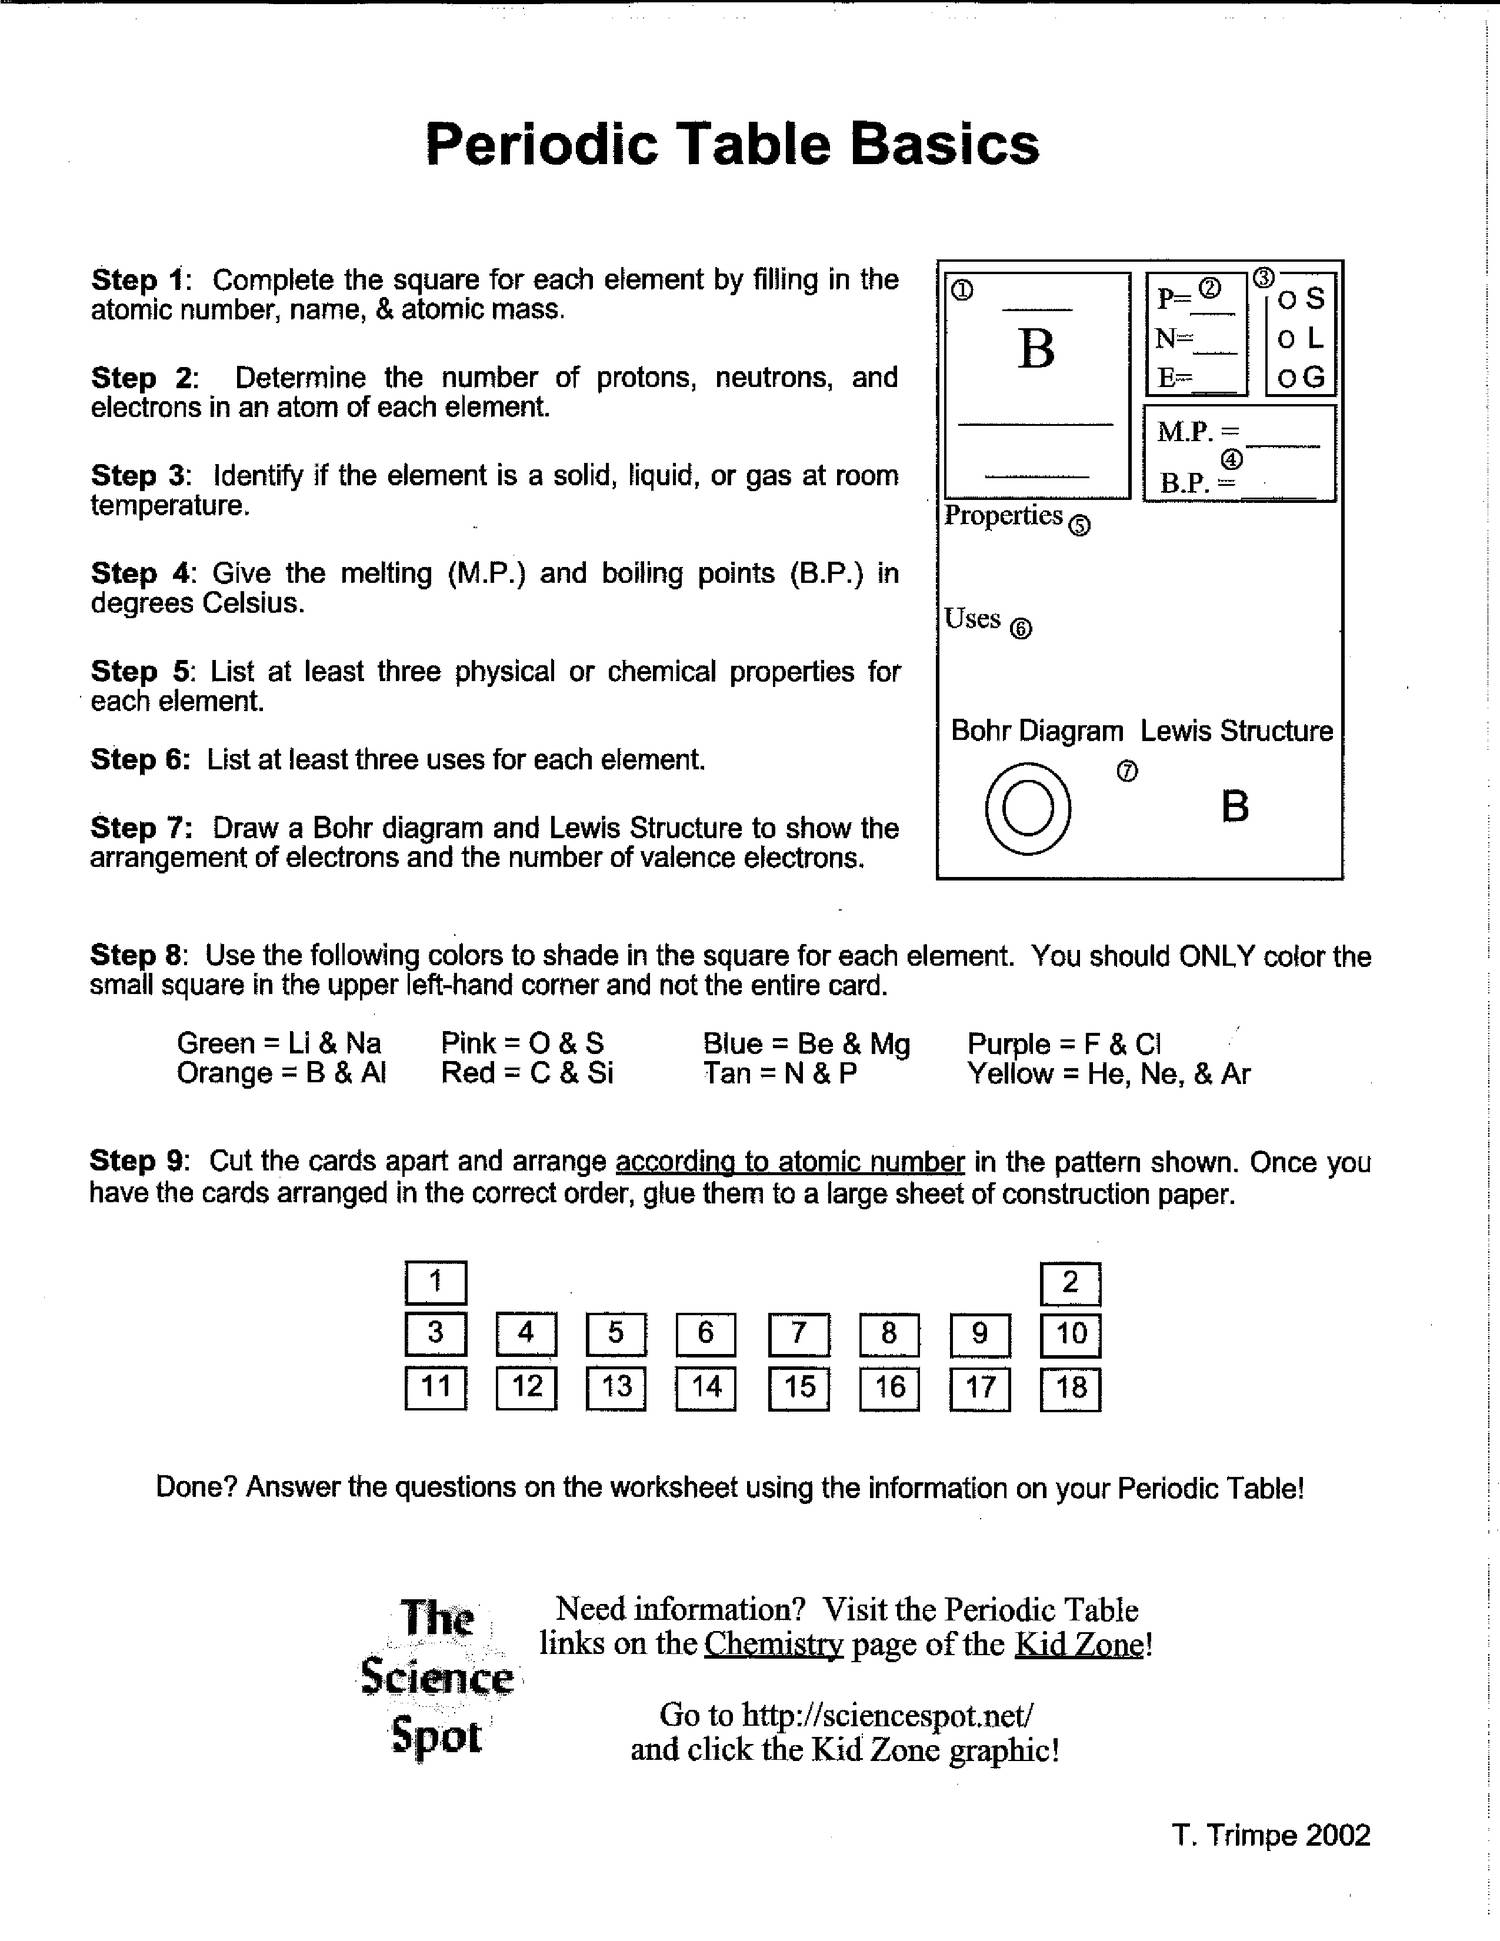 Periodic table basics worksheets and posterpdf docdroid urtaz Gallery